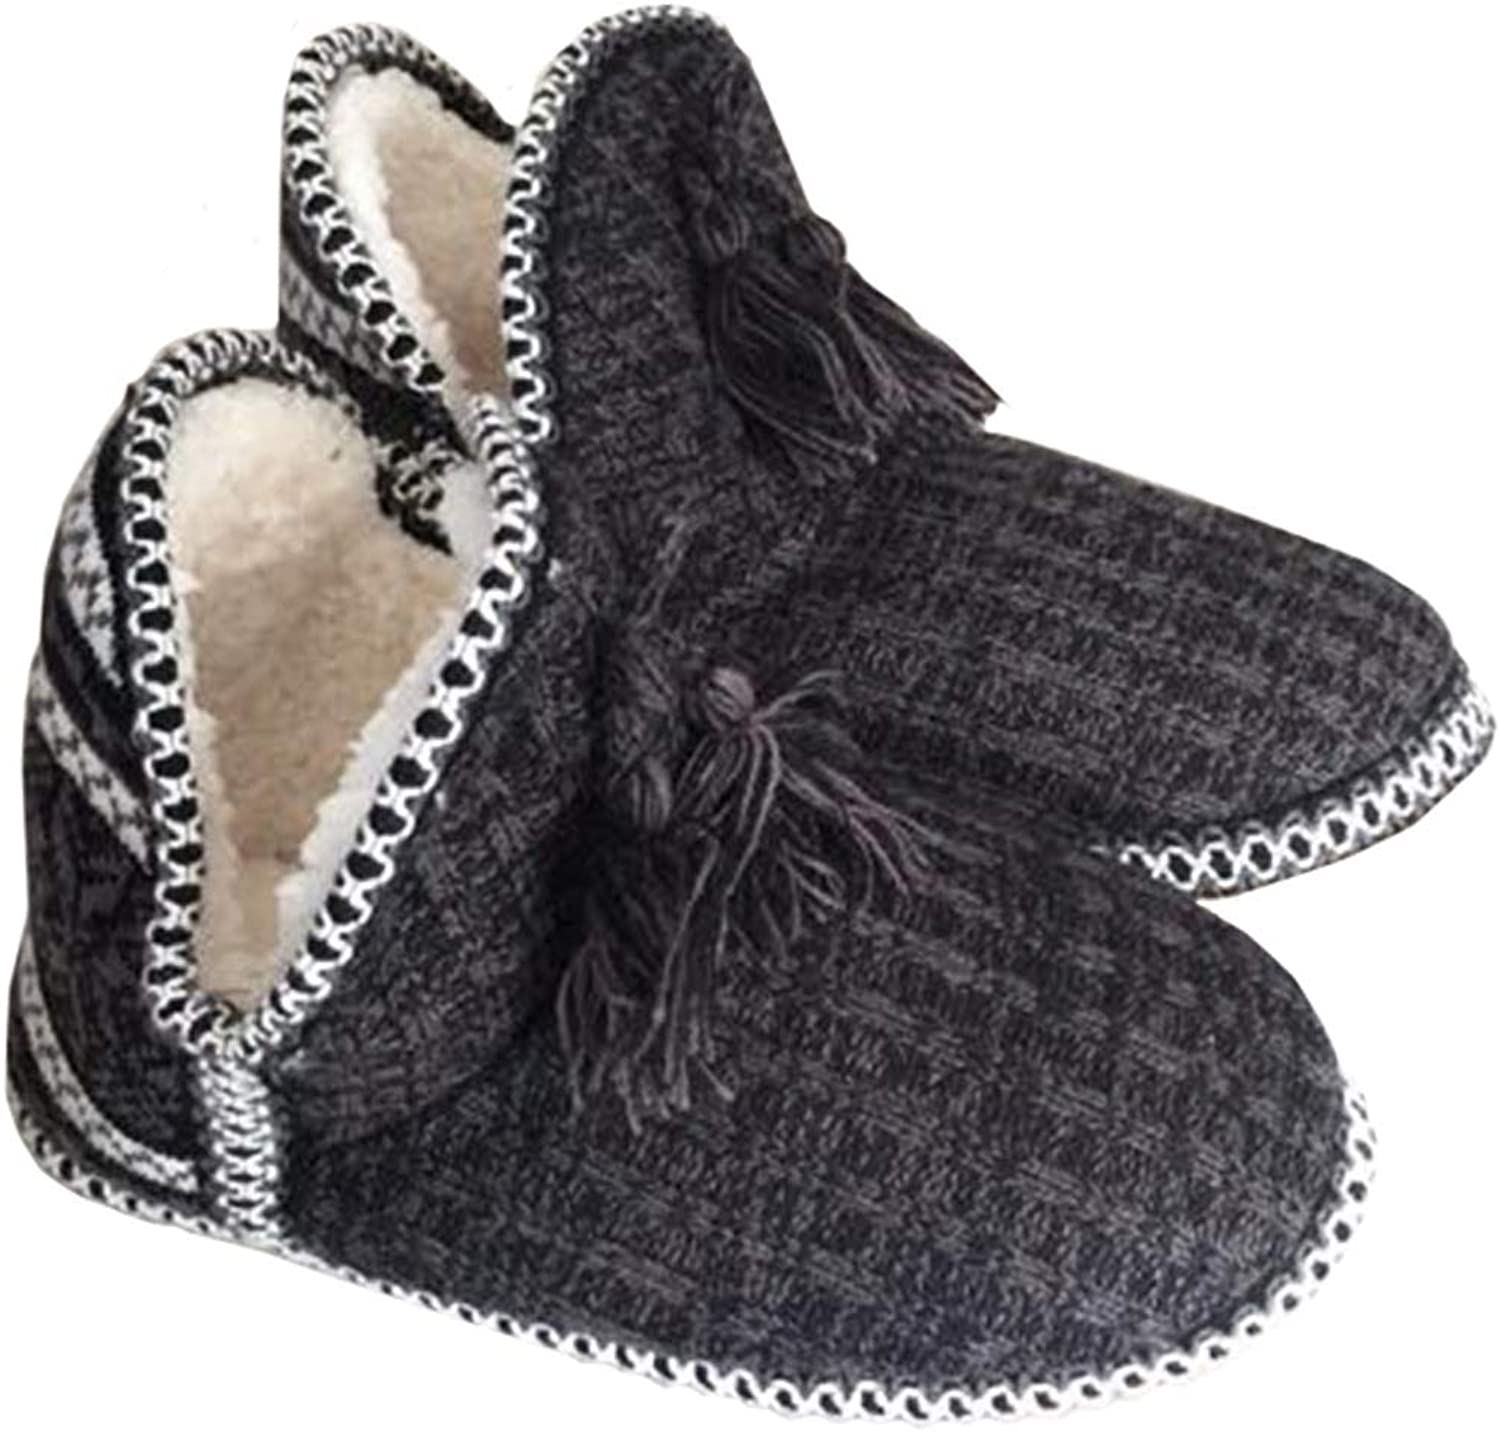 VAQM Winter Slippers for Women Knit House Slippers Booties Non Slip Indoor shoes Warm Bedroom Slippers Cashmere Indoor Ankle Boots